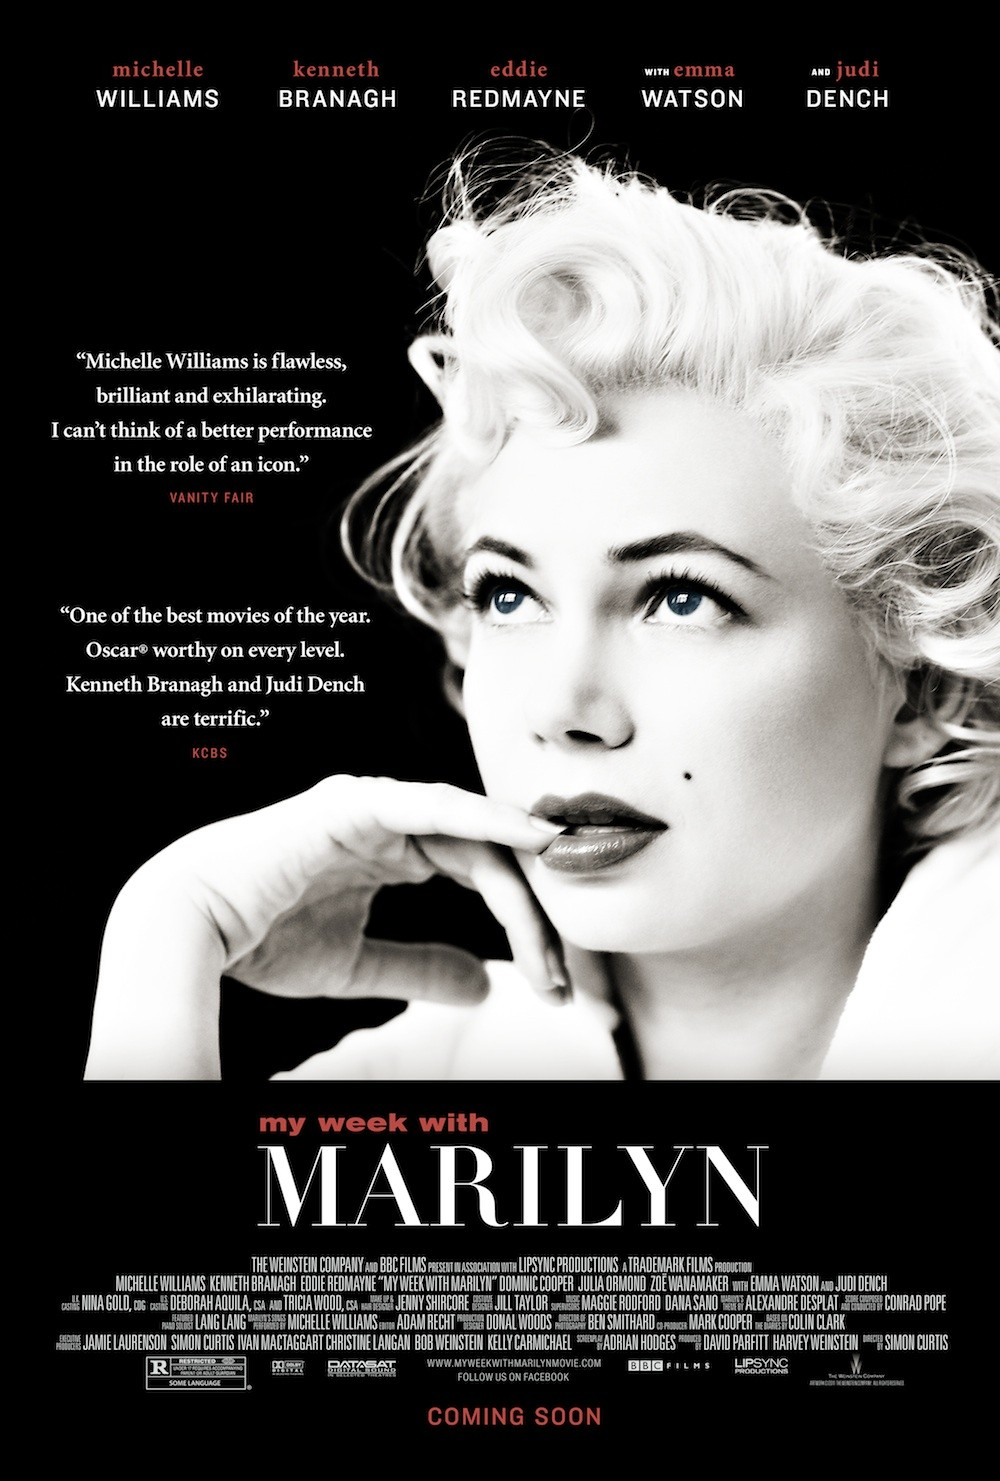 http://filmgeek.fr/wp-content/uploads/2012/04/New-Poster-of-My-Week-with-Marilyn.jpeg